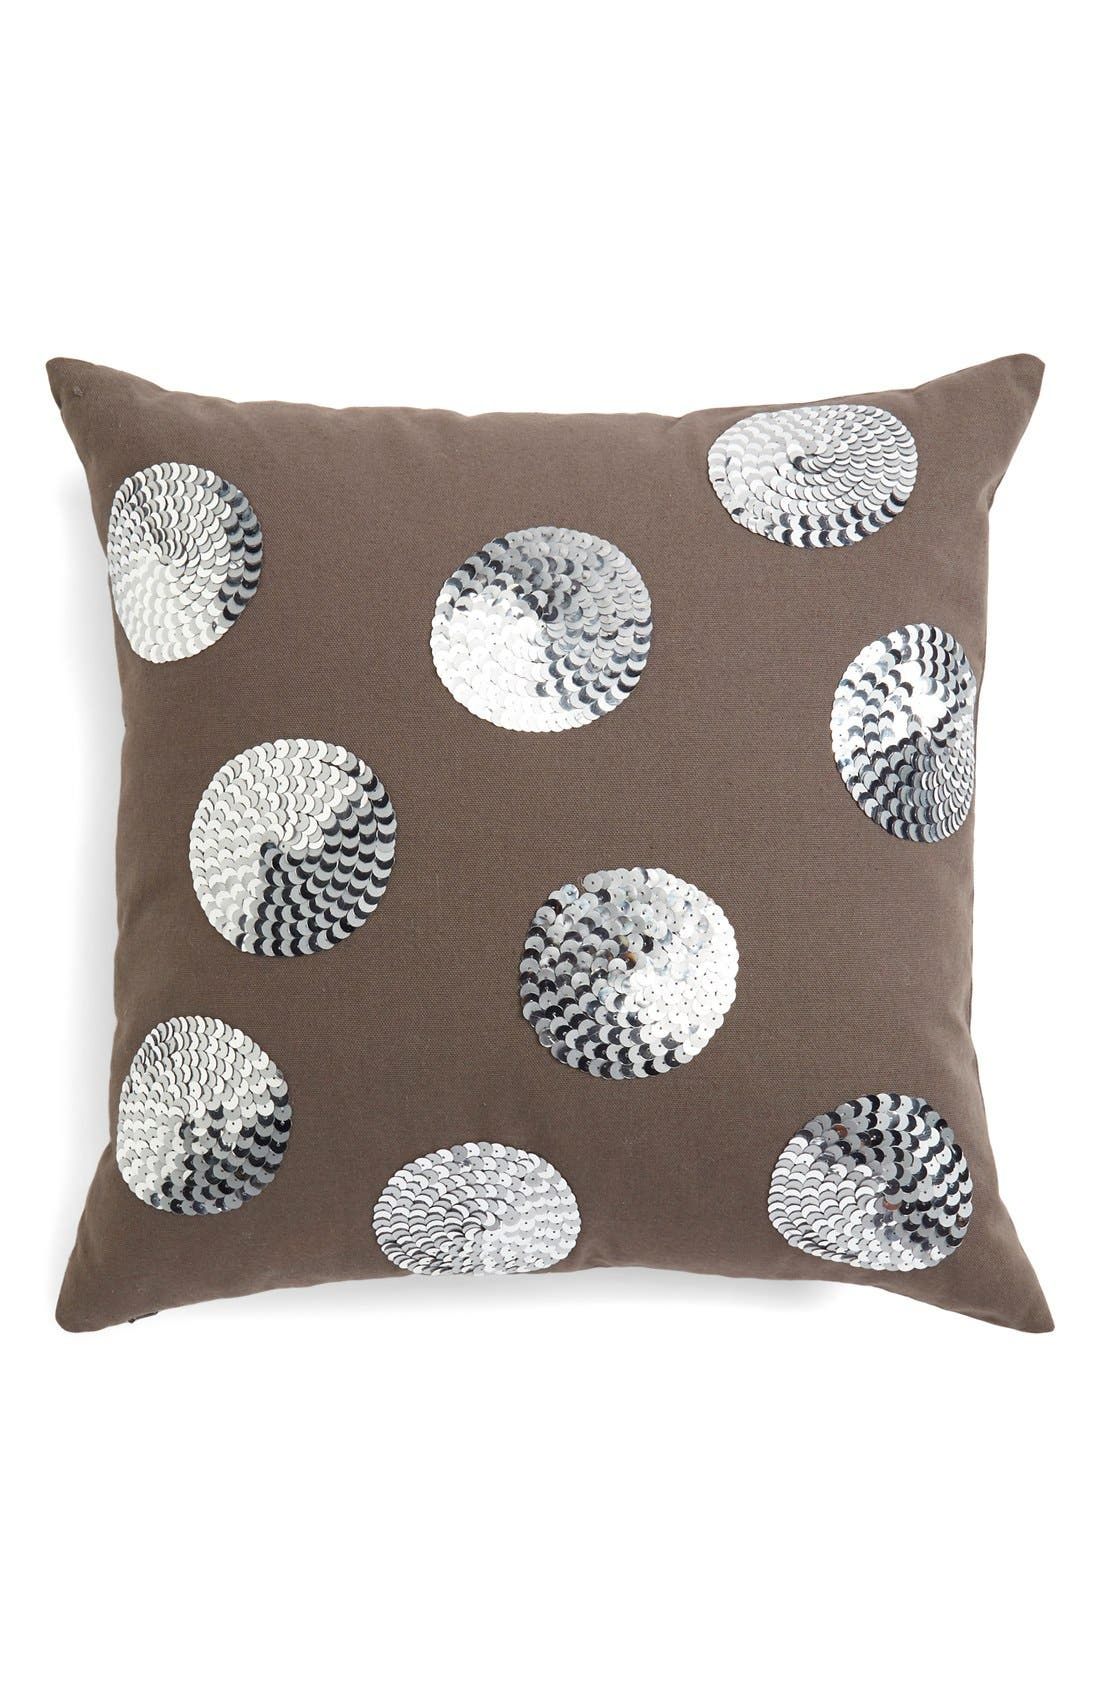 Alternate Image 1 Selected - Nordstrom at Home 'Dottie Paillettes' Accent Pillow